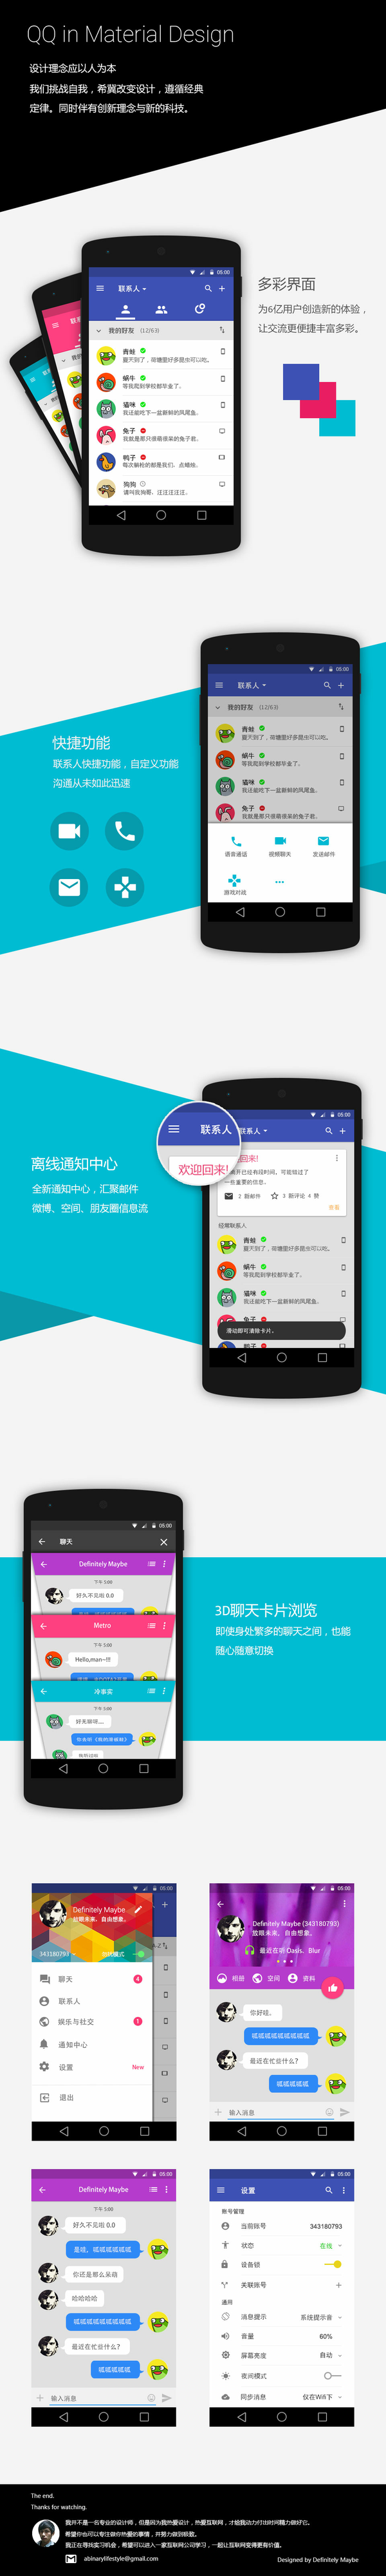 qq-in-material-design